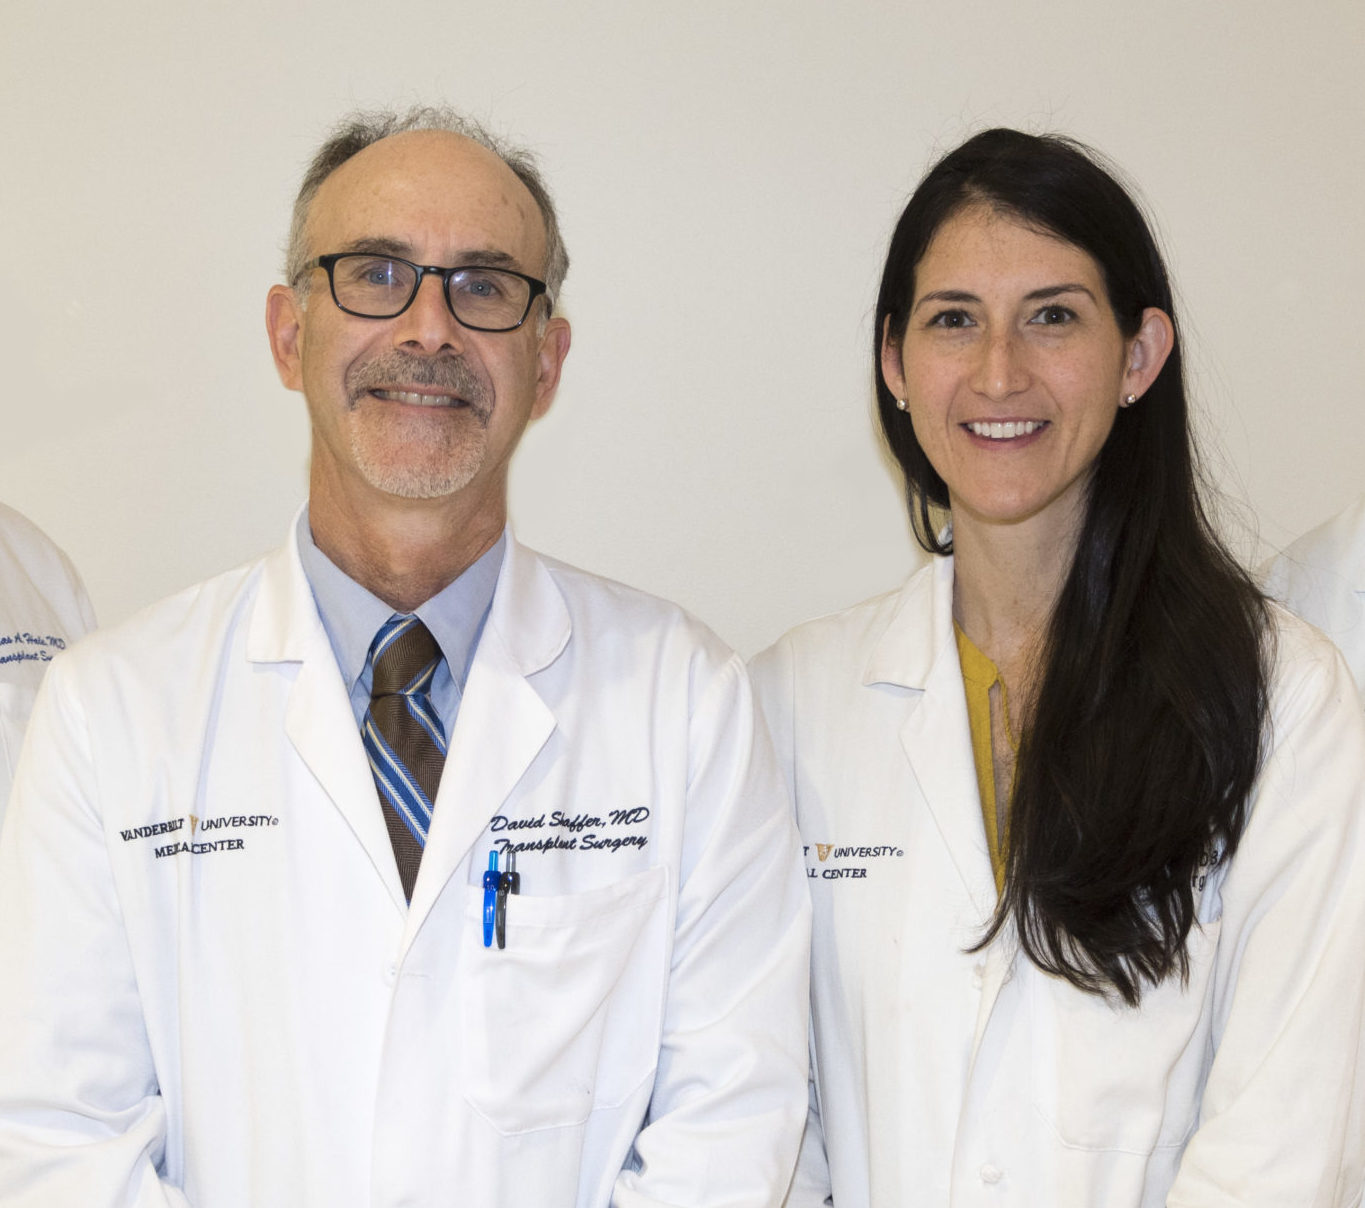 David Shaffer, MD, and Rachel Forbes, MD